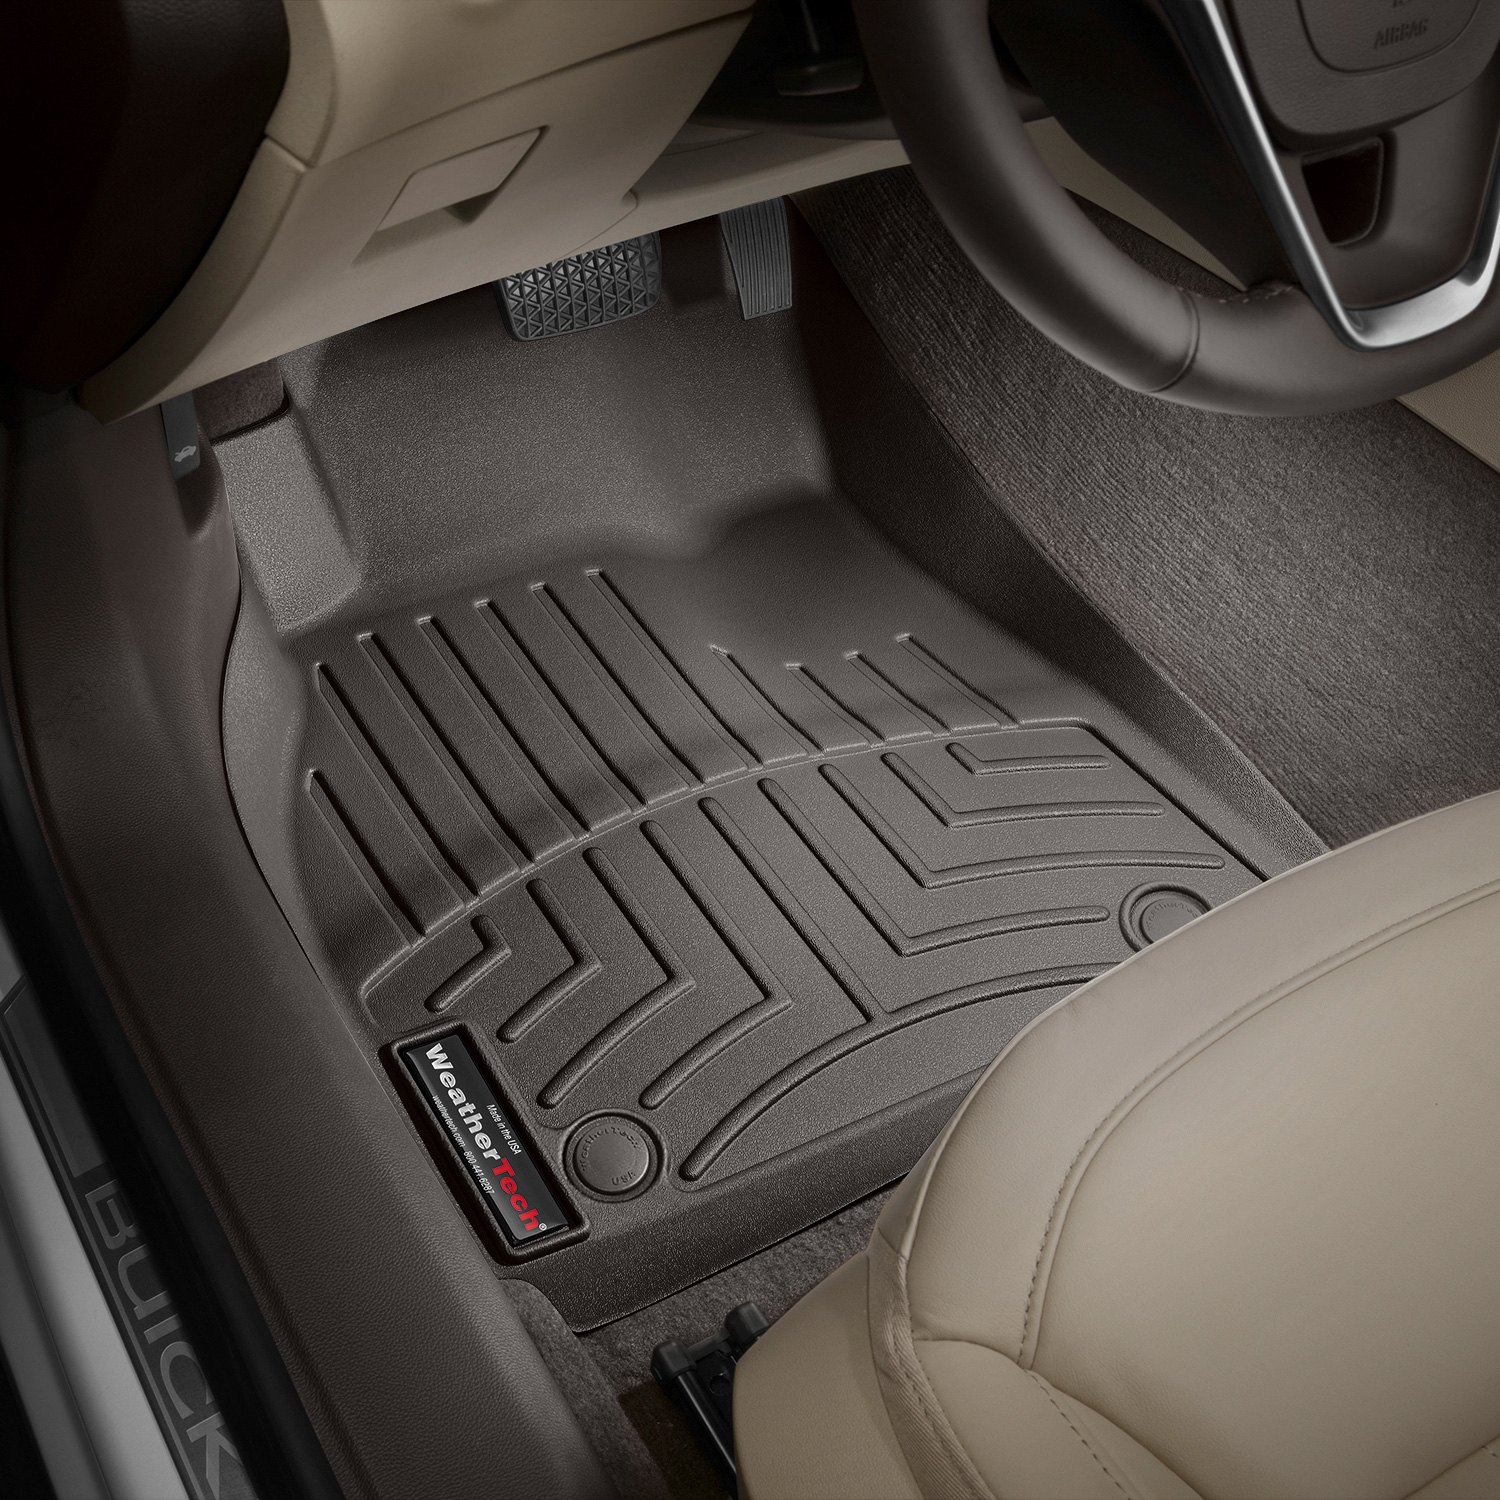 online of floor focus custom set mats builder velourtex carpet the ford for designer rs st mat fitted